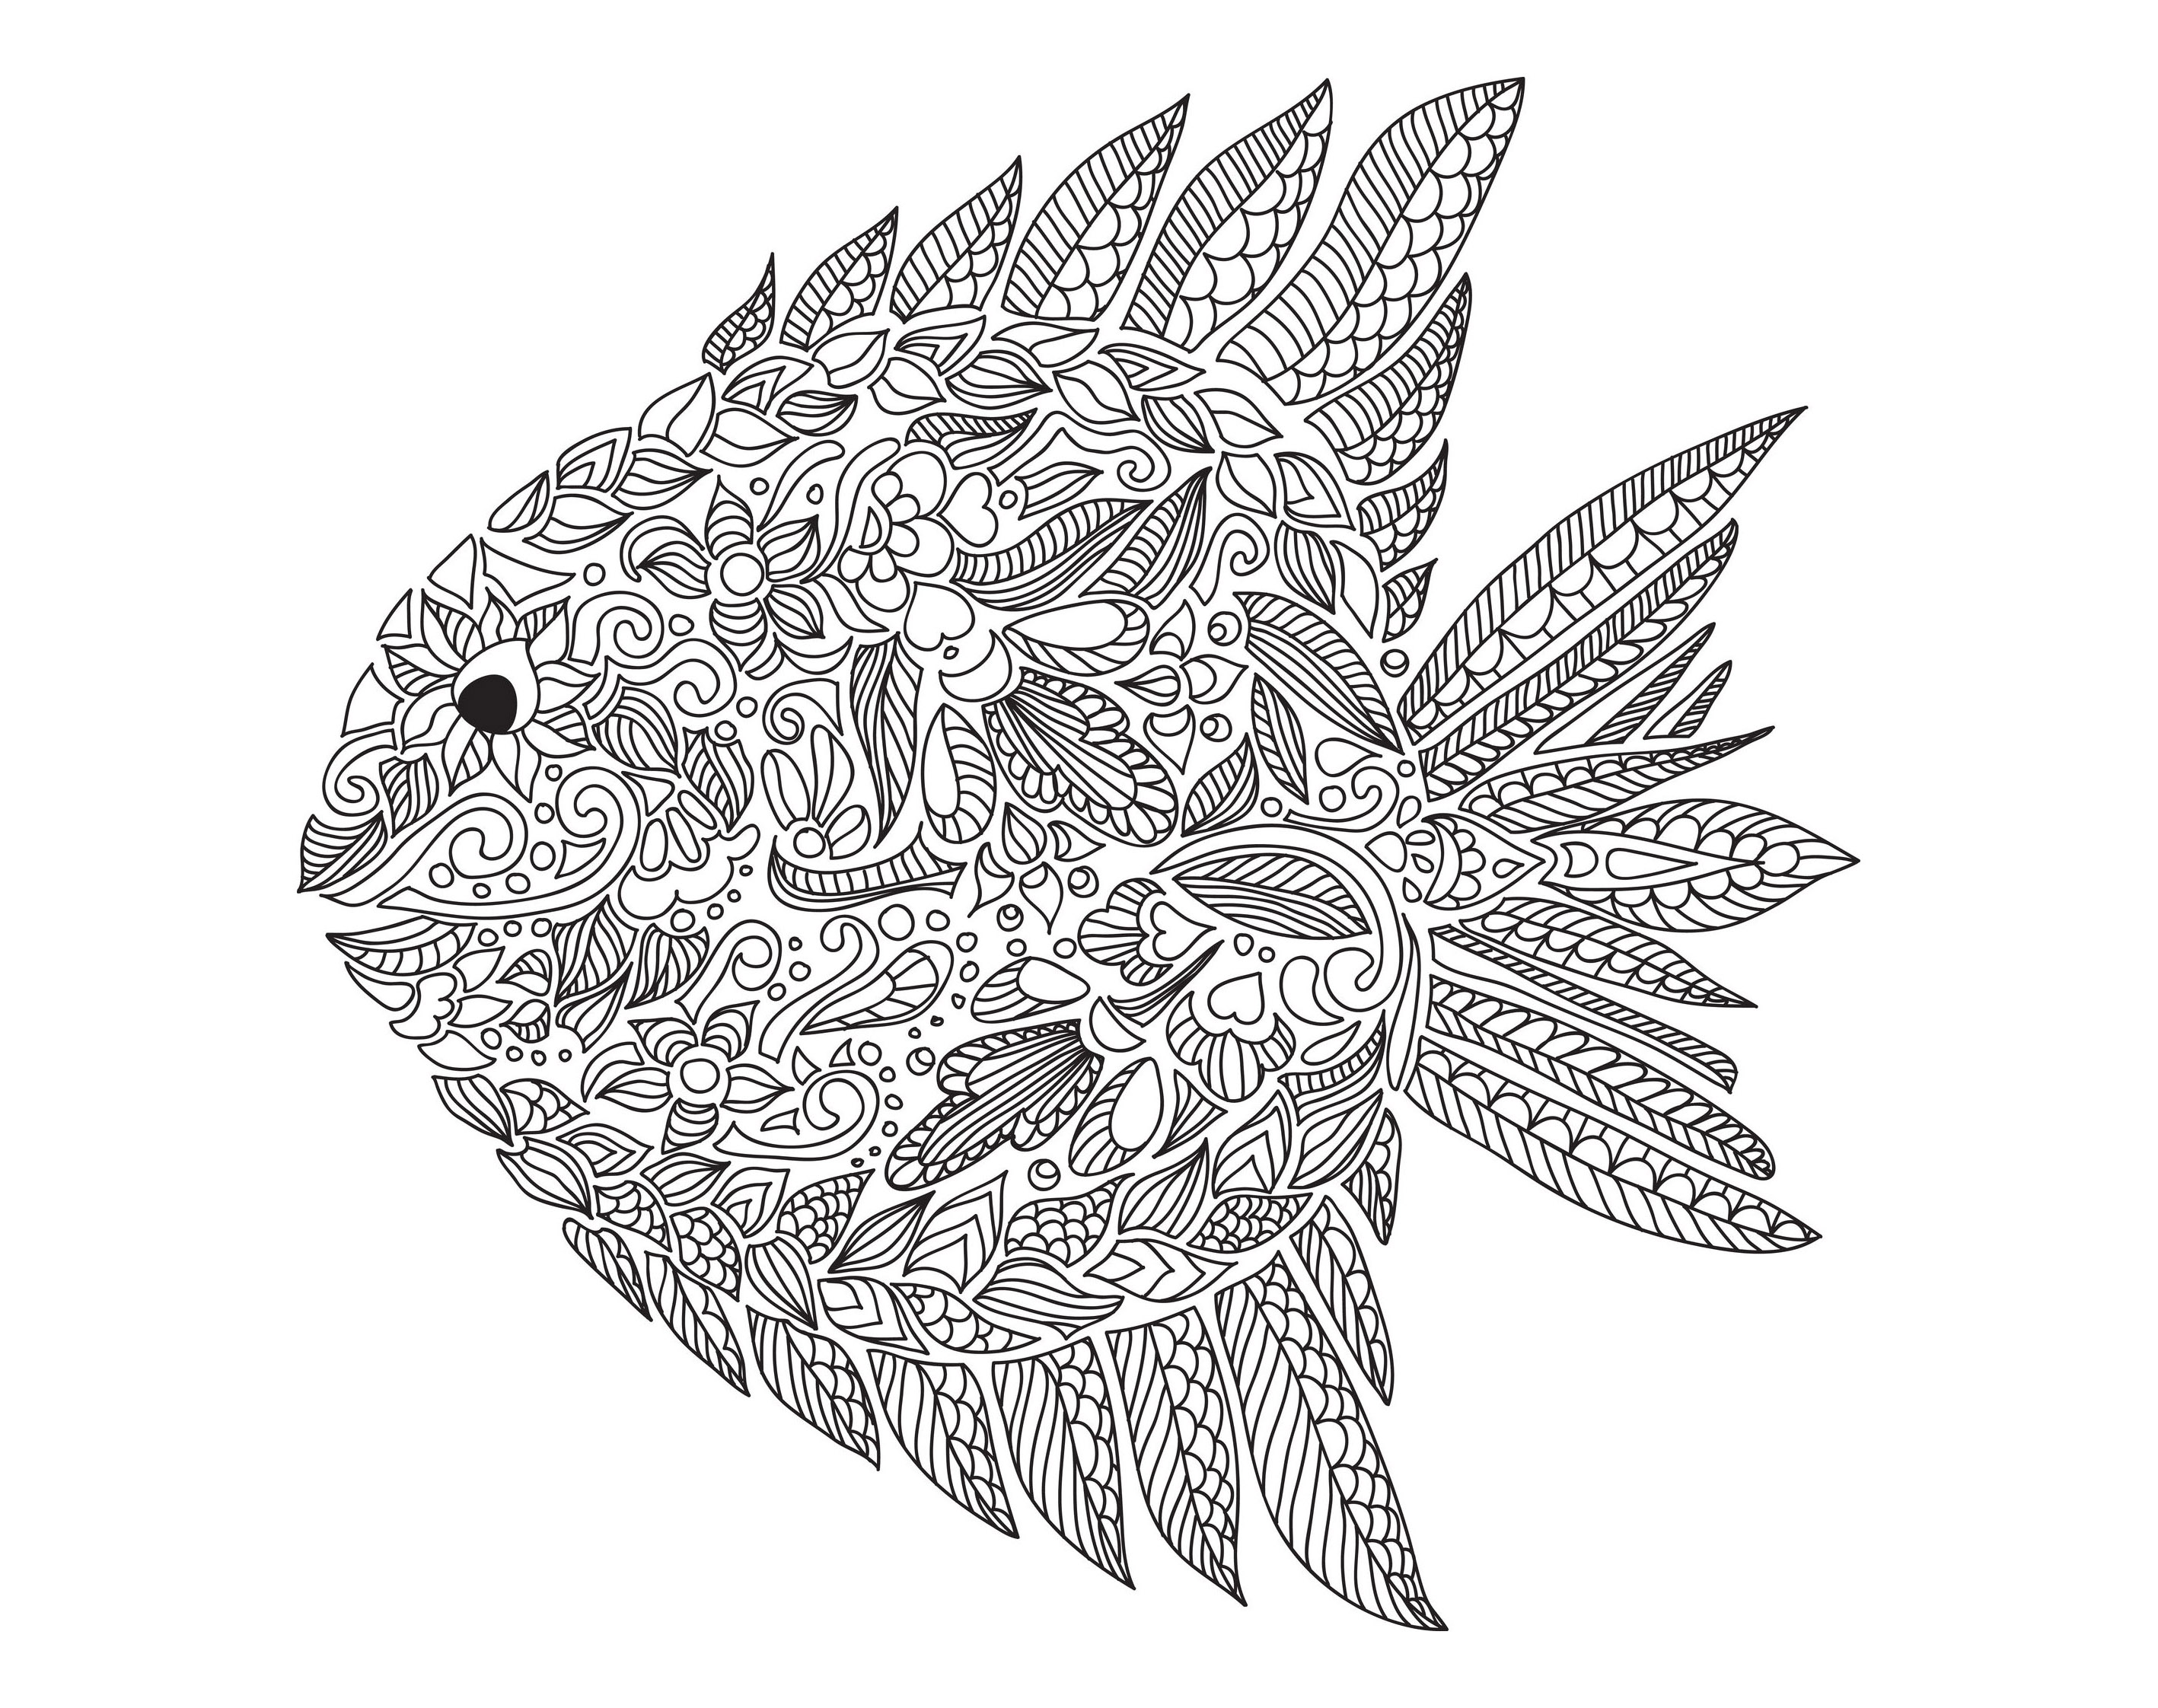 Zentangle fish zentangle adult coloring pages page 2 for Adult fish coloring pages